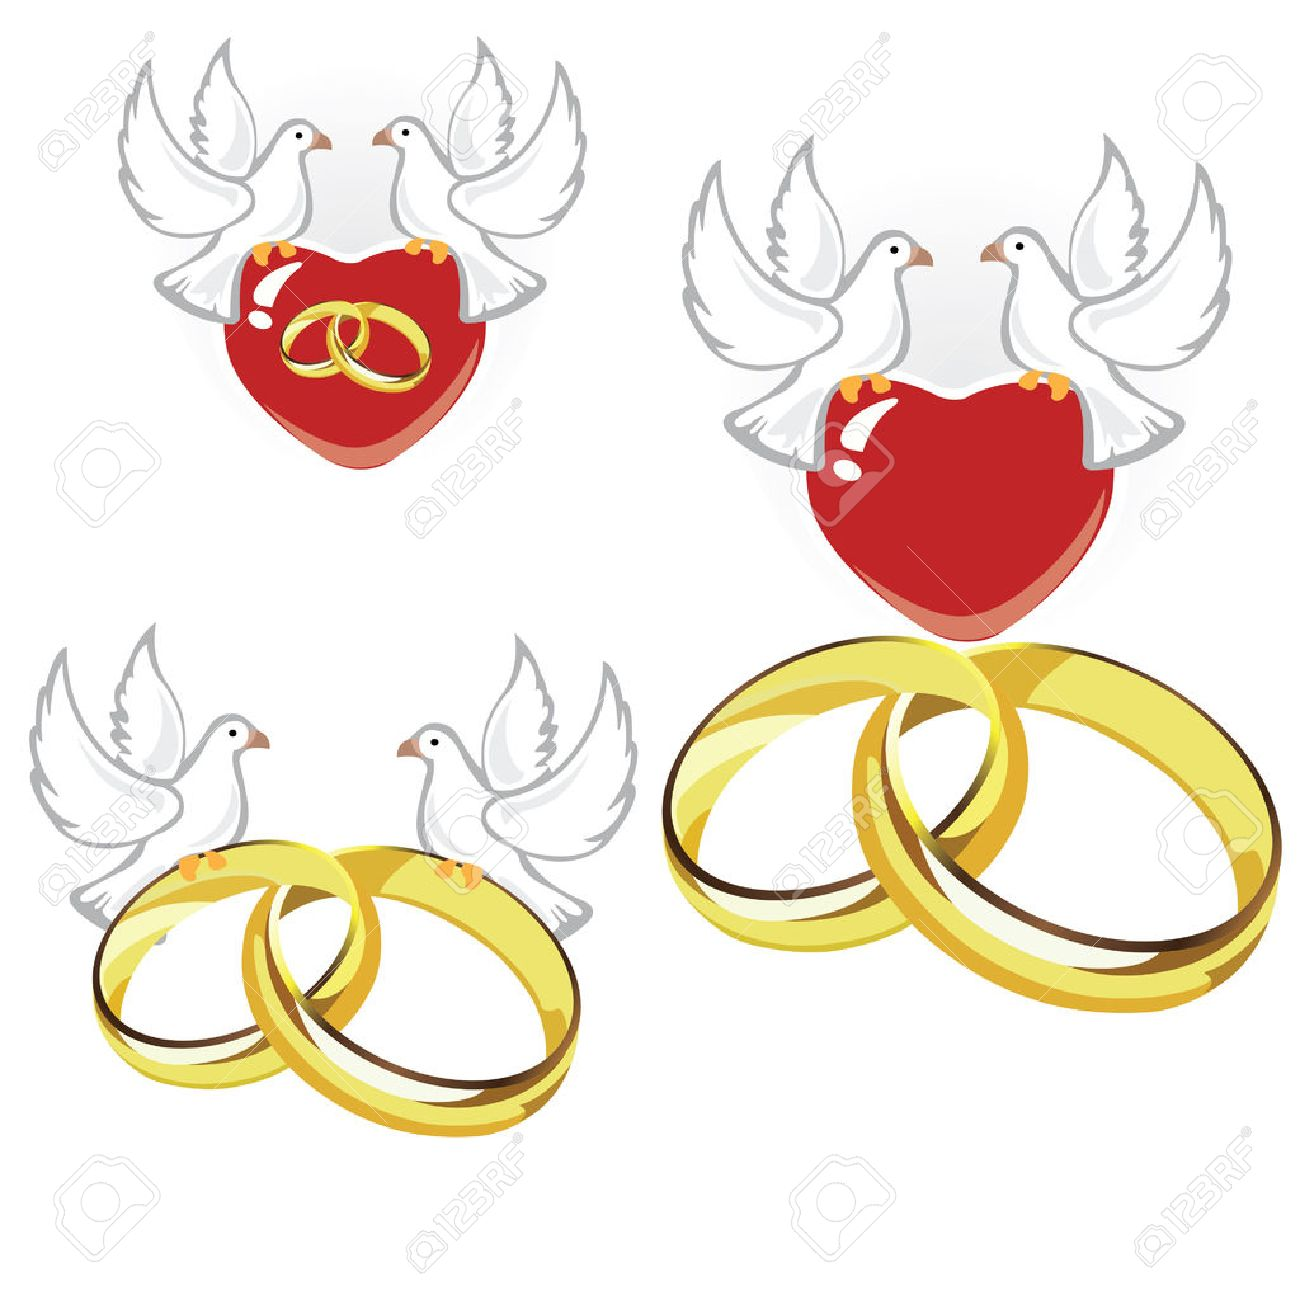 Wedding rings, hearts and doves.